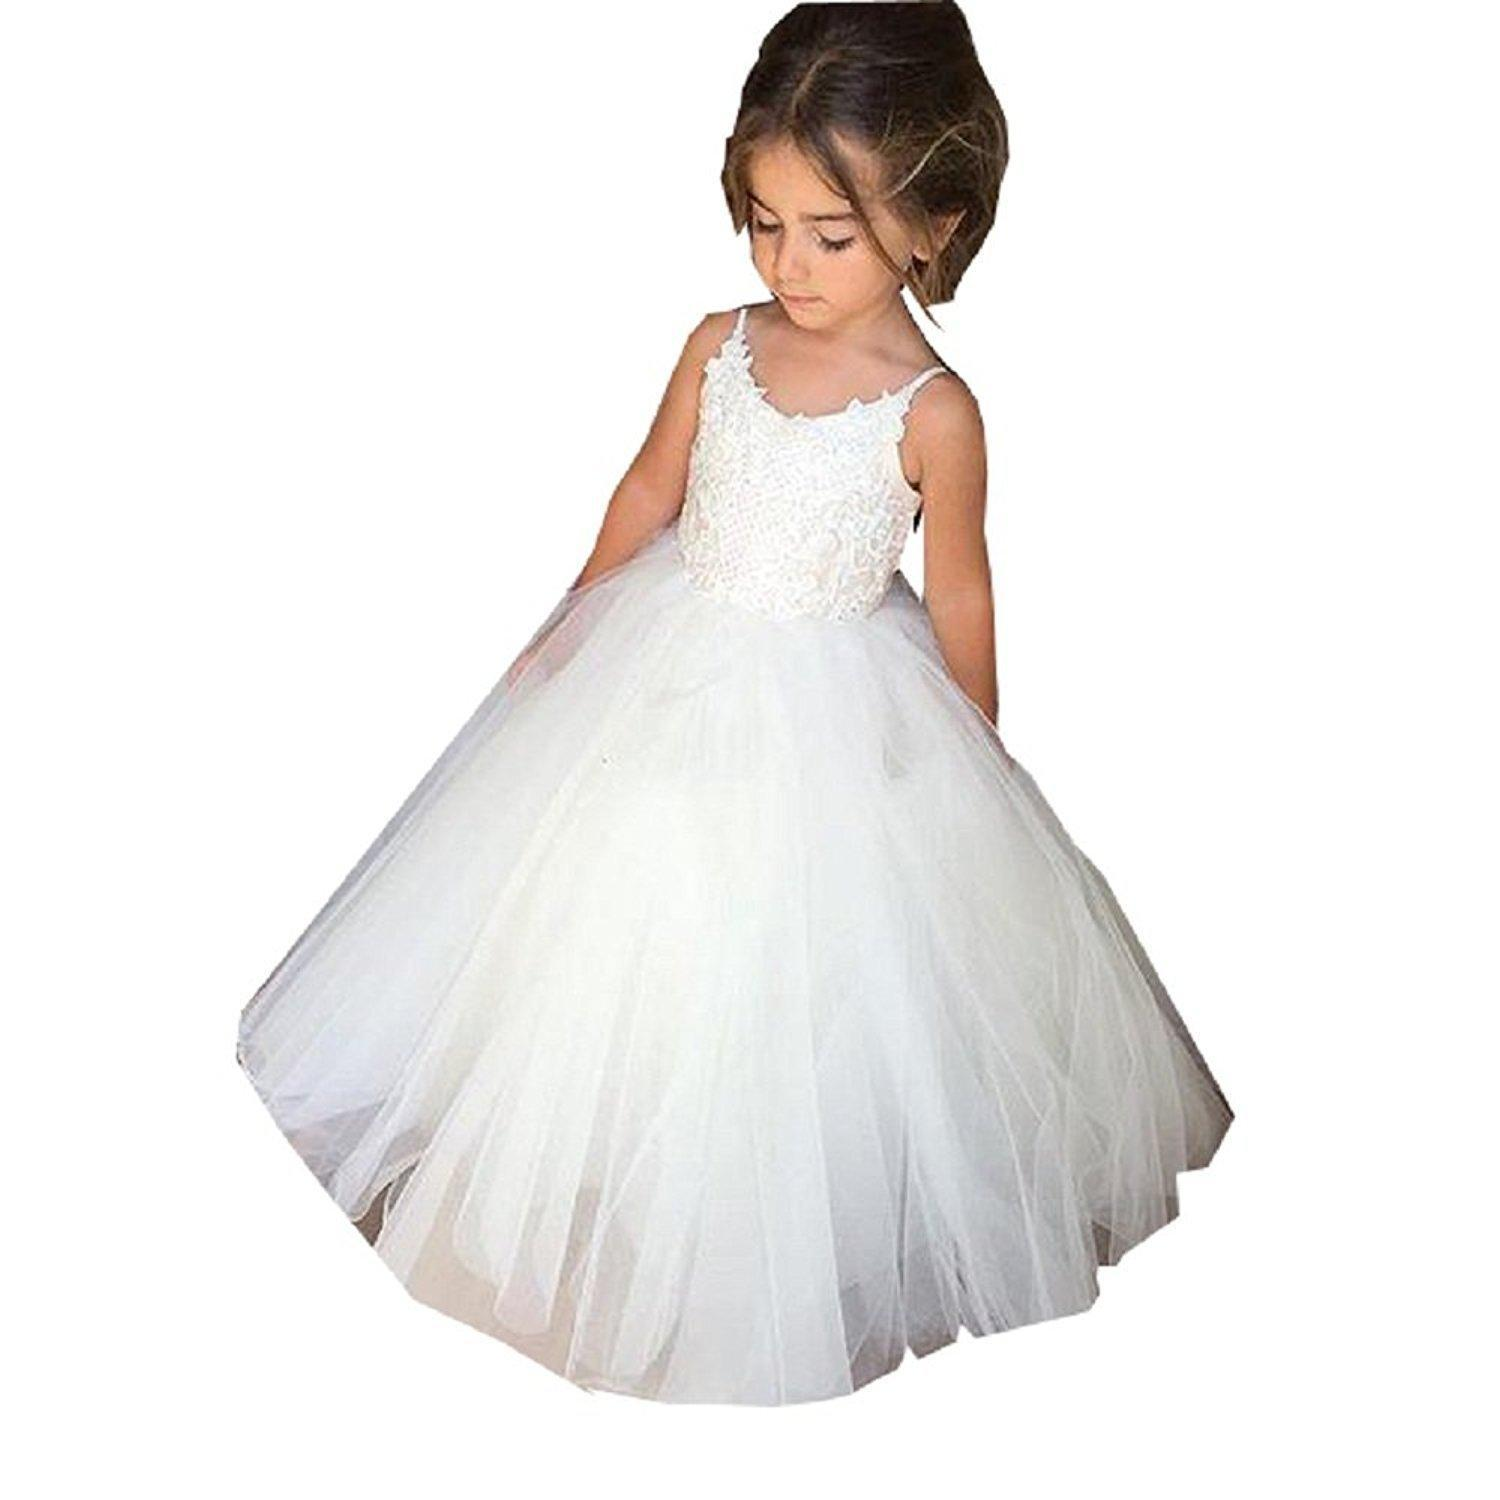 585f338c204 Wedding Flower Girls Lace Tulle Ball Gowns First Communion Dresses Kids  Dress for Wedding First Communion Dresses Party Dress Online with   70.64 Piece on ...